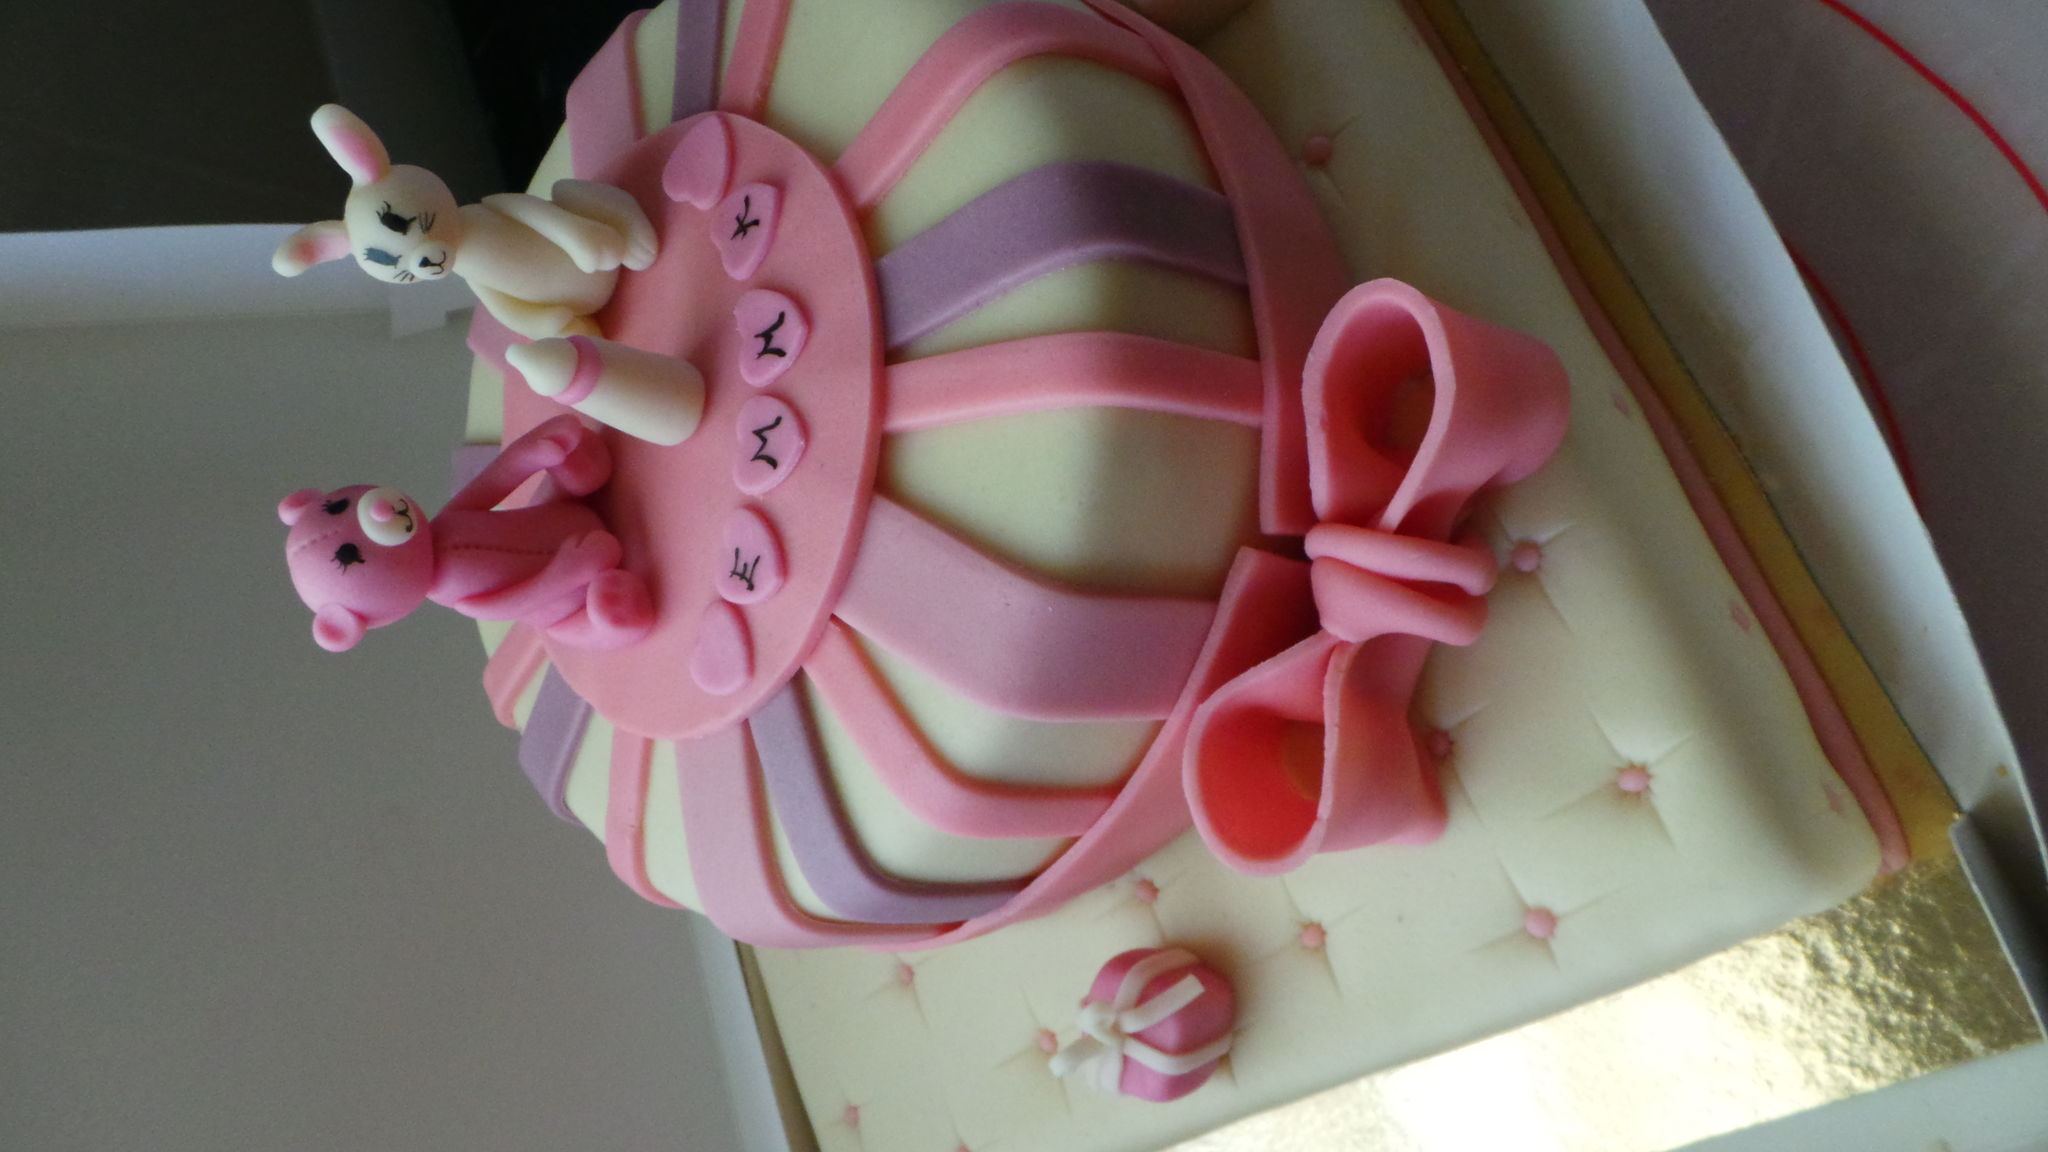 D coration gateau d anniversaire fille g226teau for Decoration 1 an fille